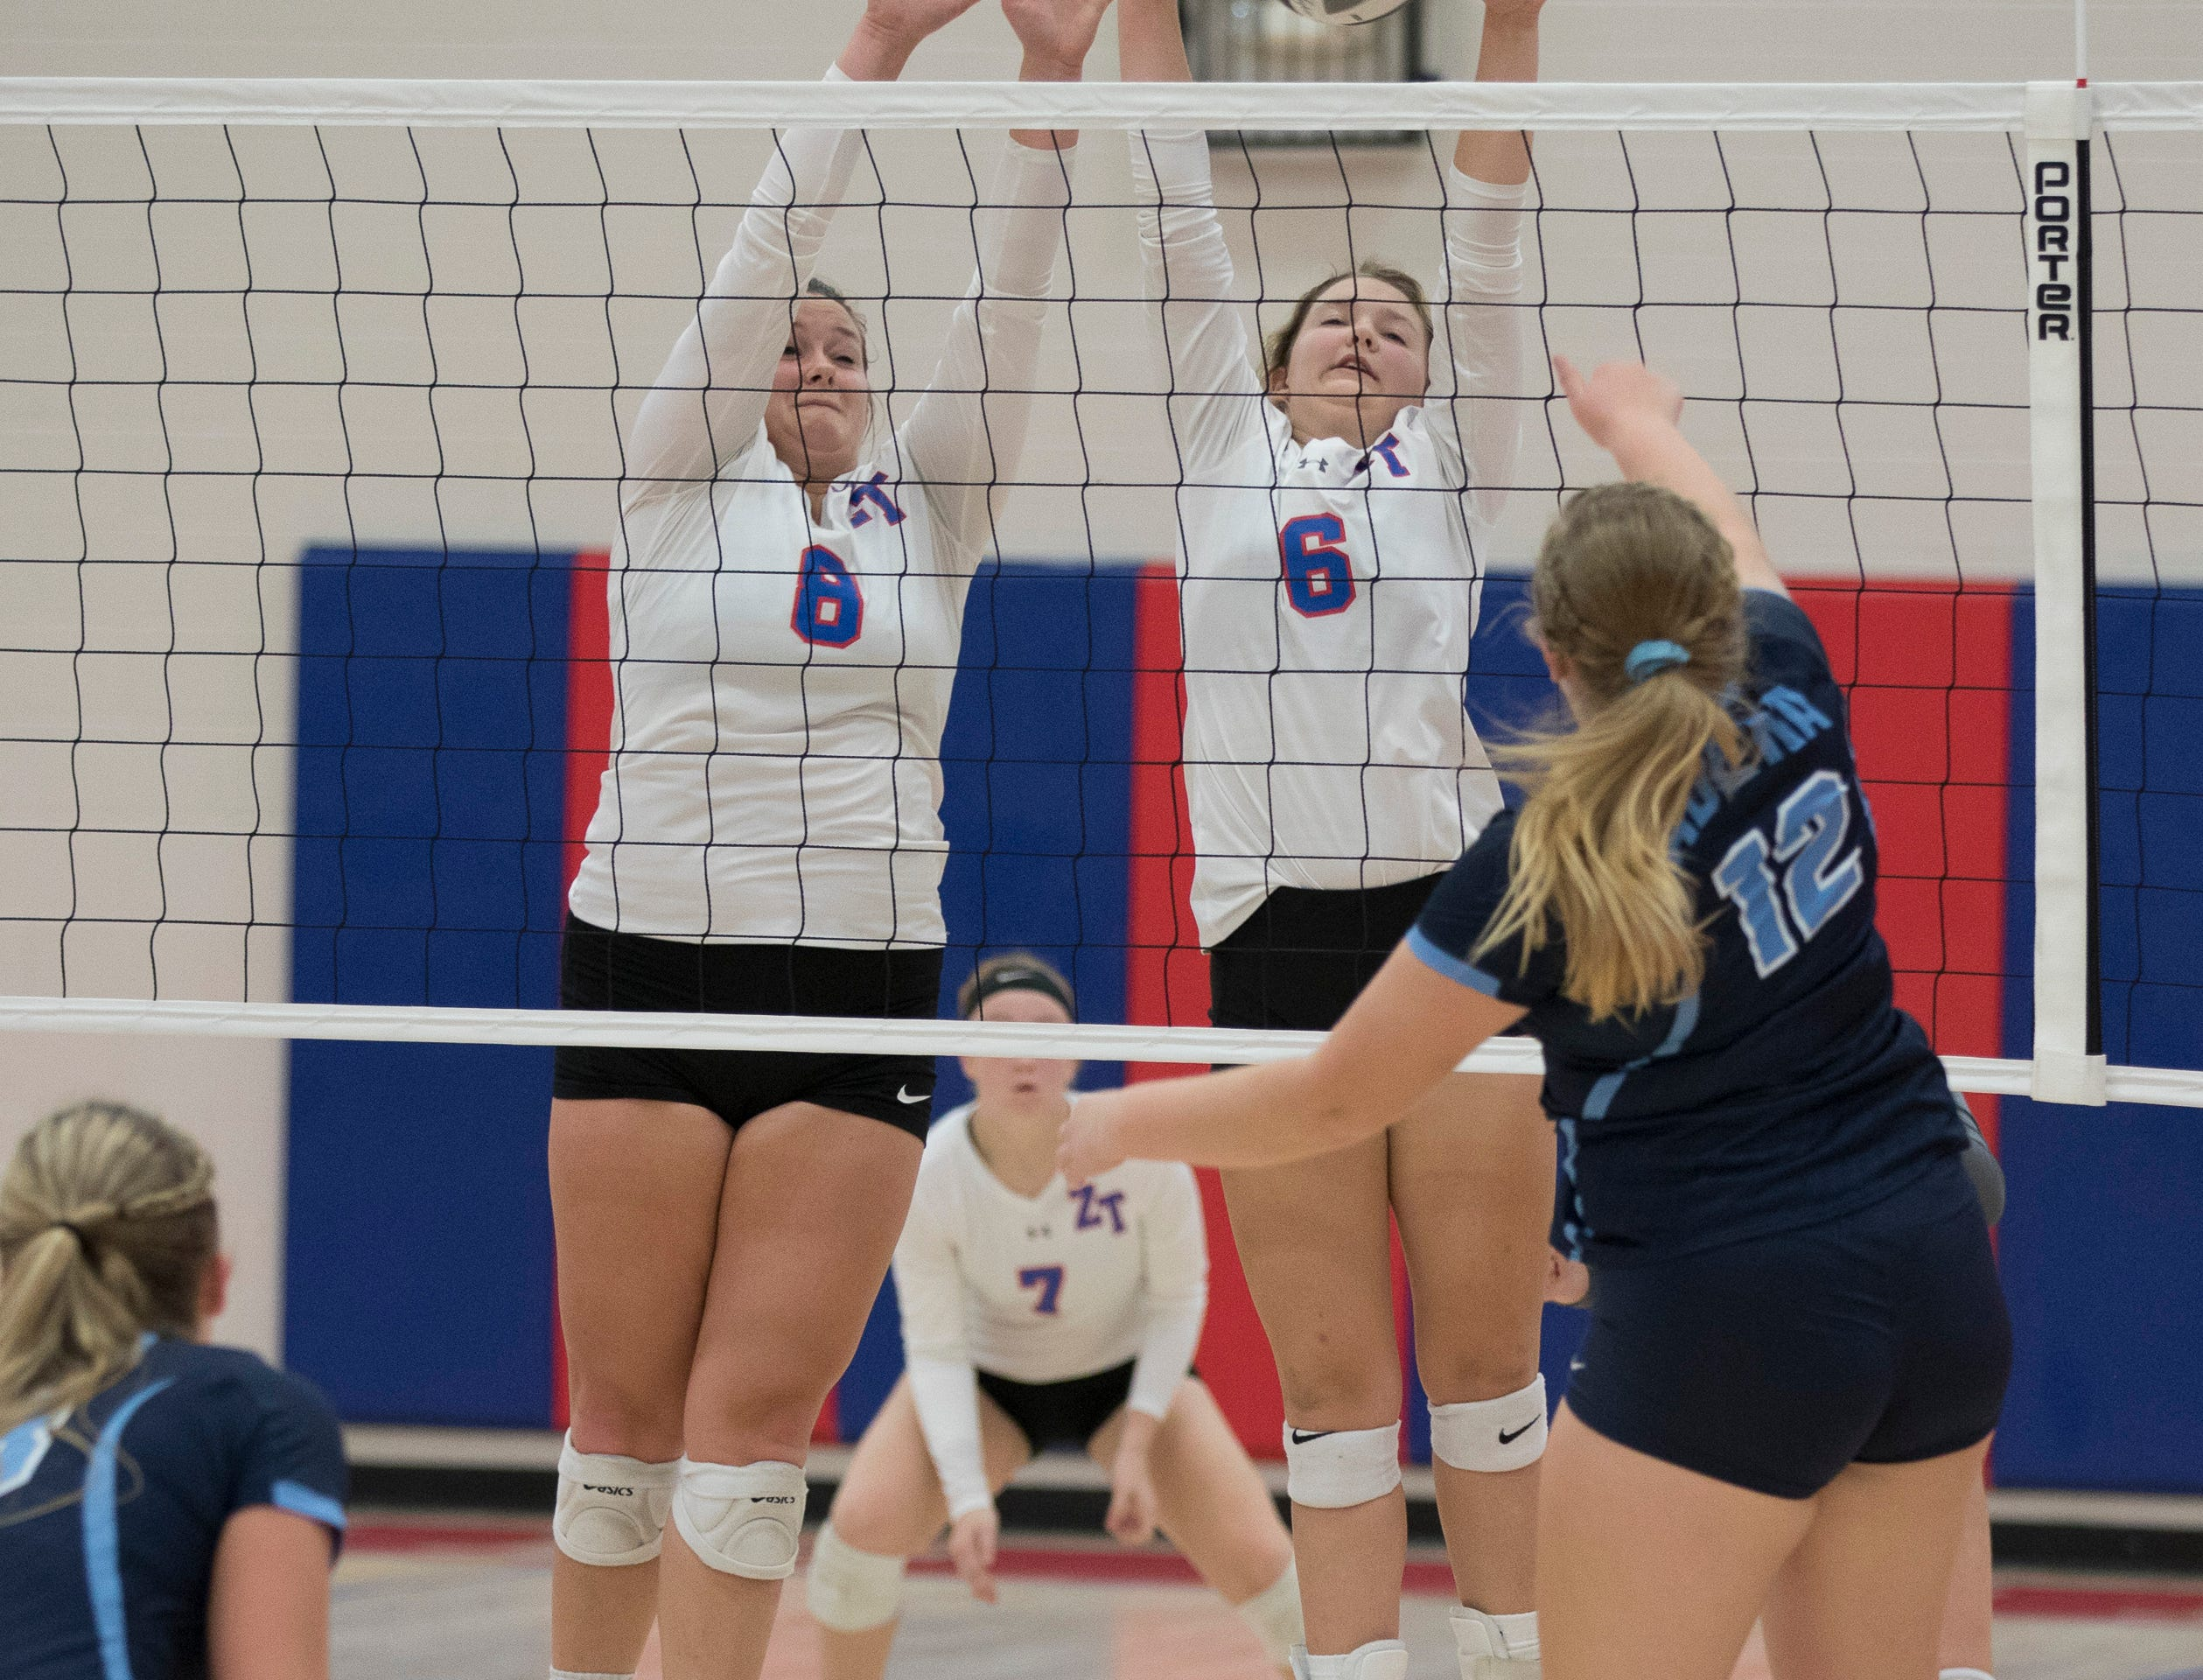 Hannah Unger and Alli Bennett block the ball returned by Adena Thursday night at Zane Trace High School. Zane Trace would go on to defeat Adena 3-0.